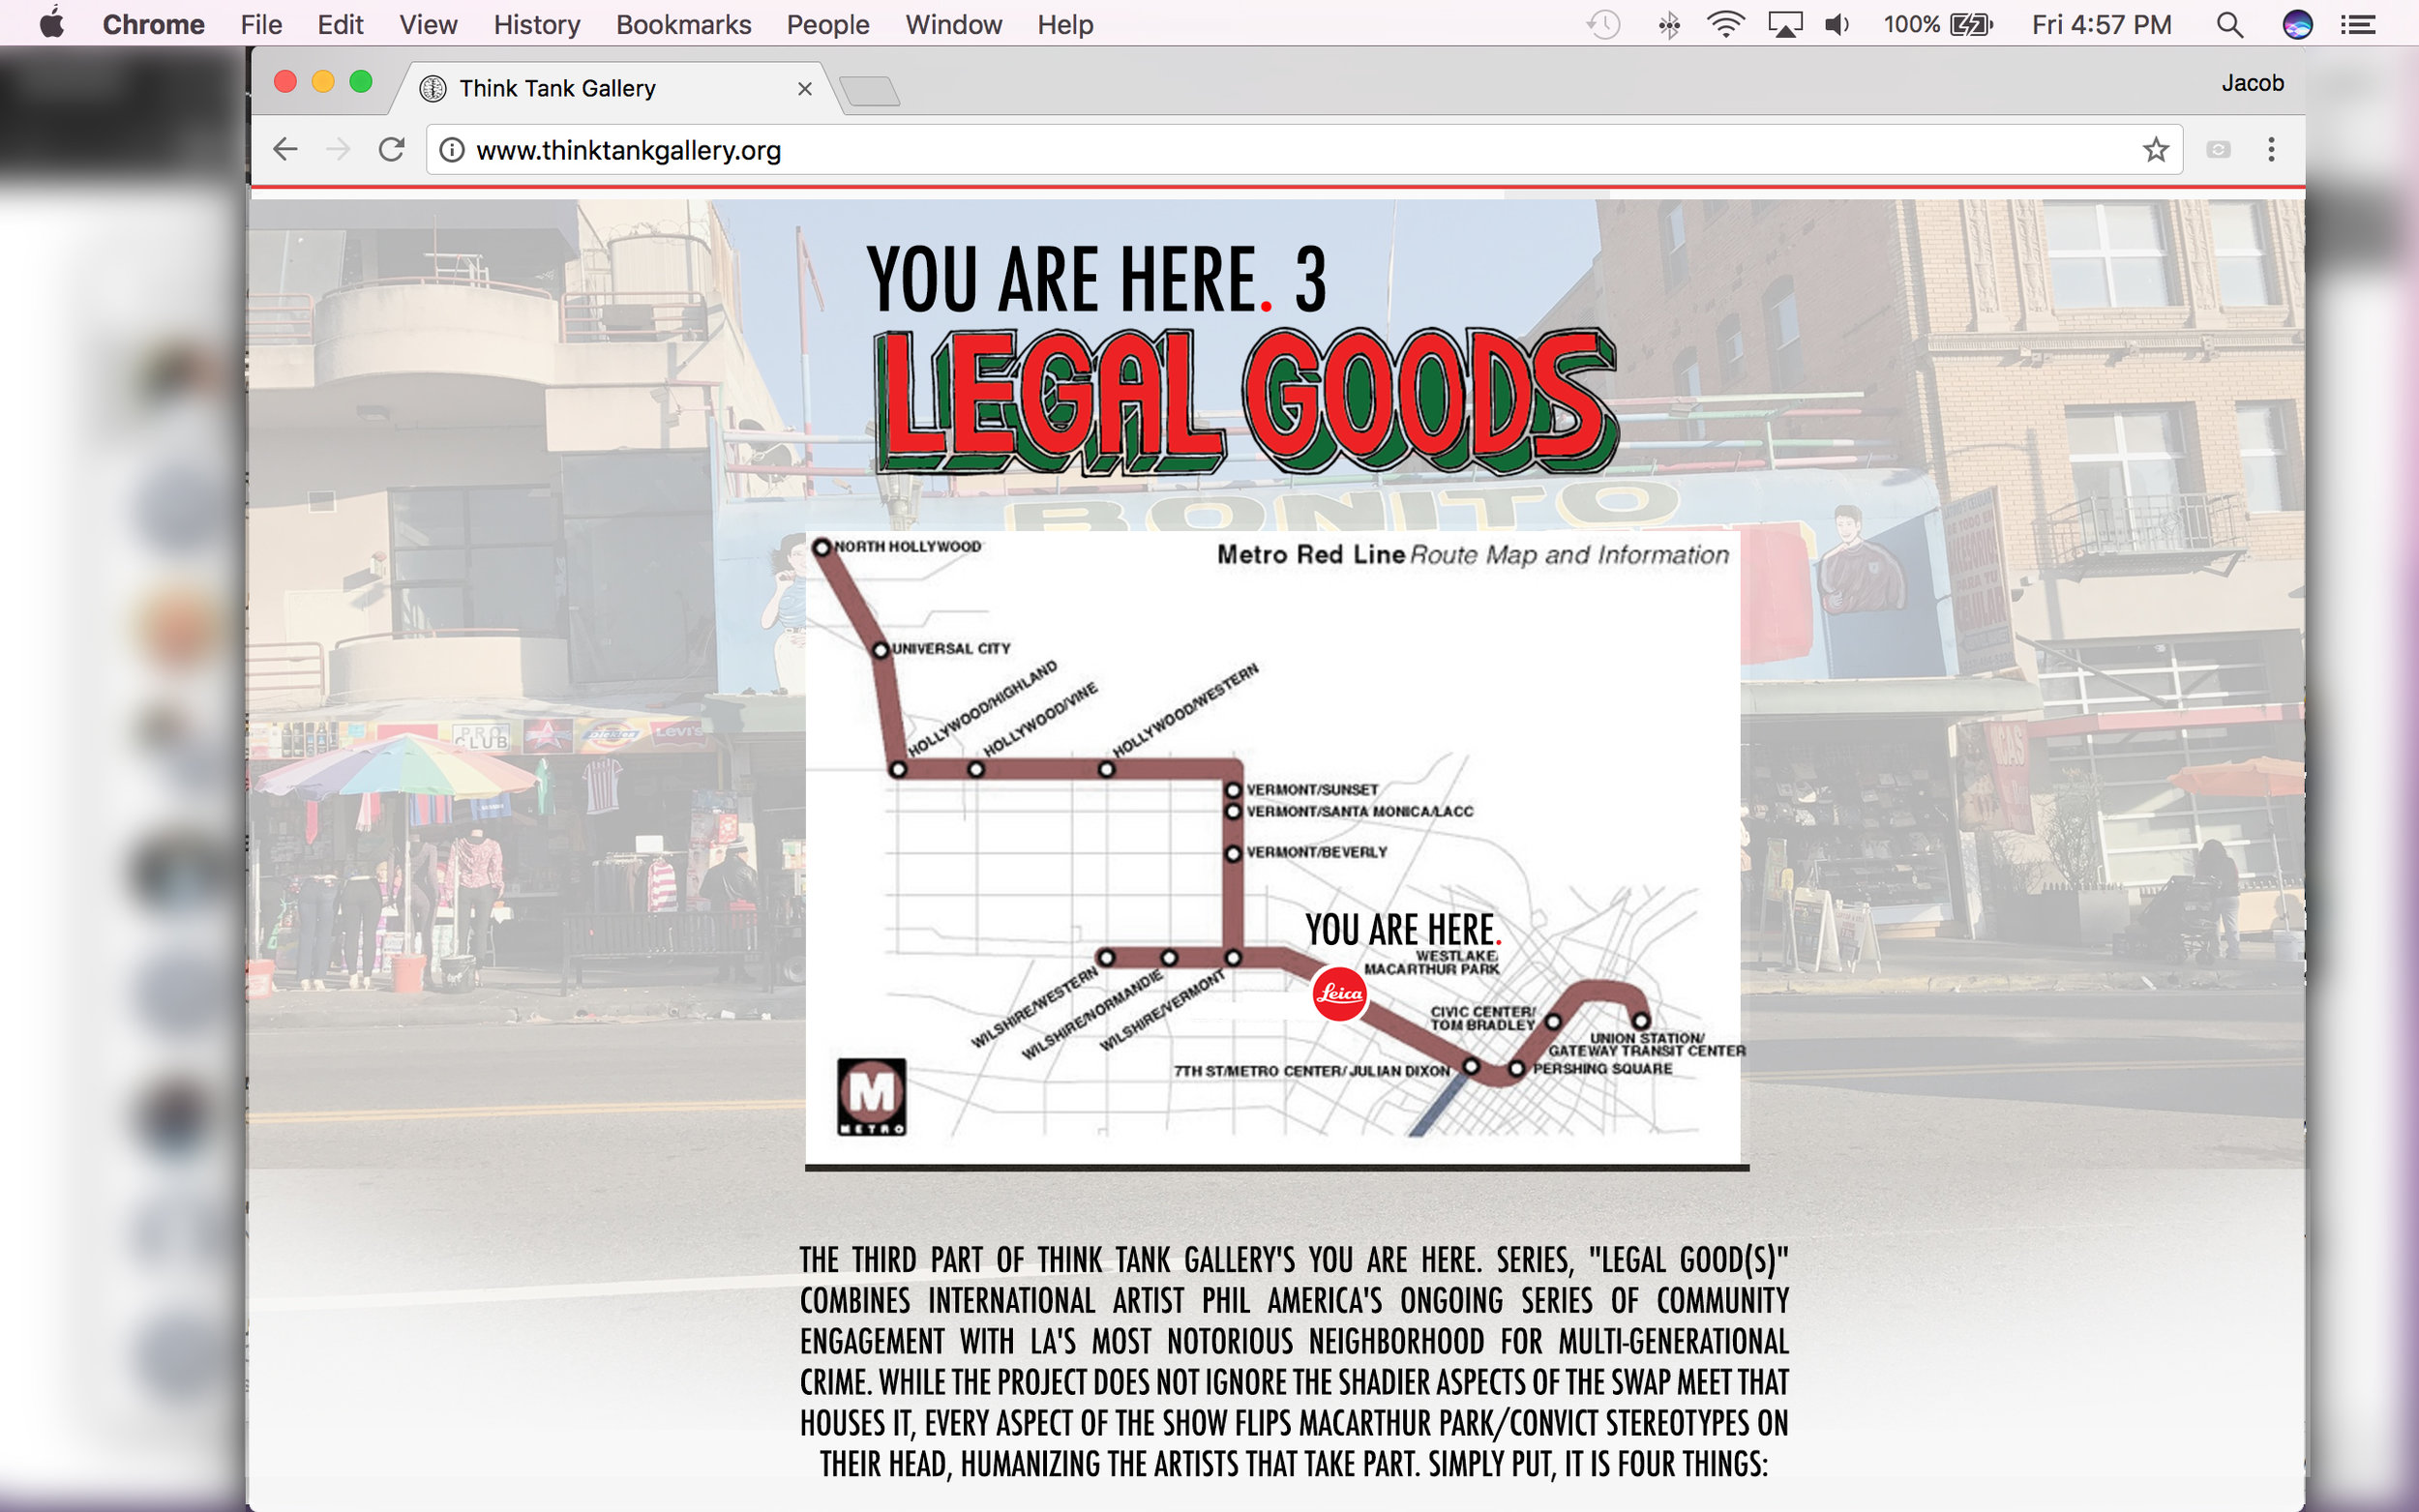 Mockup of YOU ARE HERE. 3 landing page.